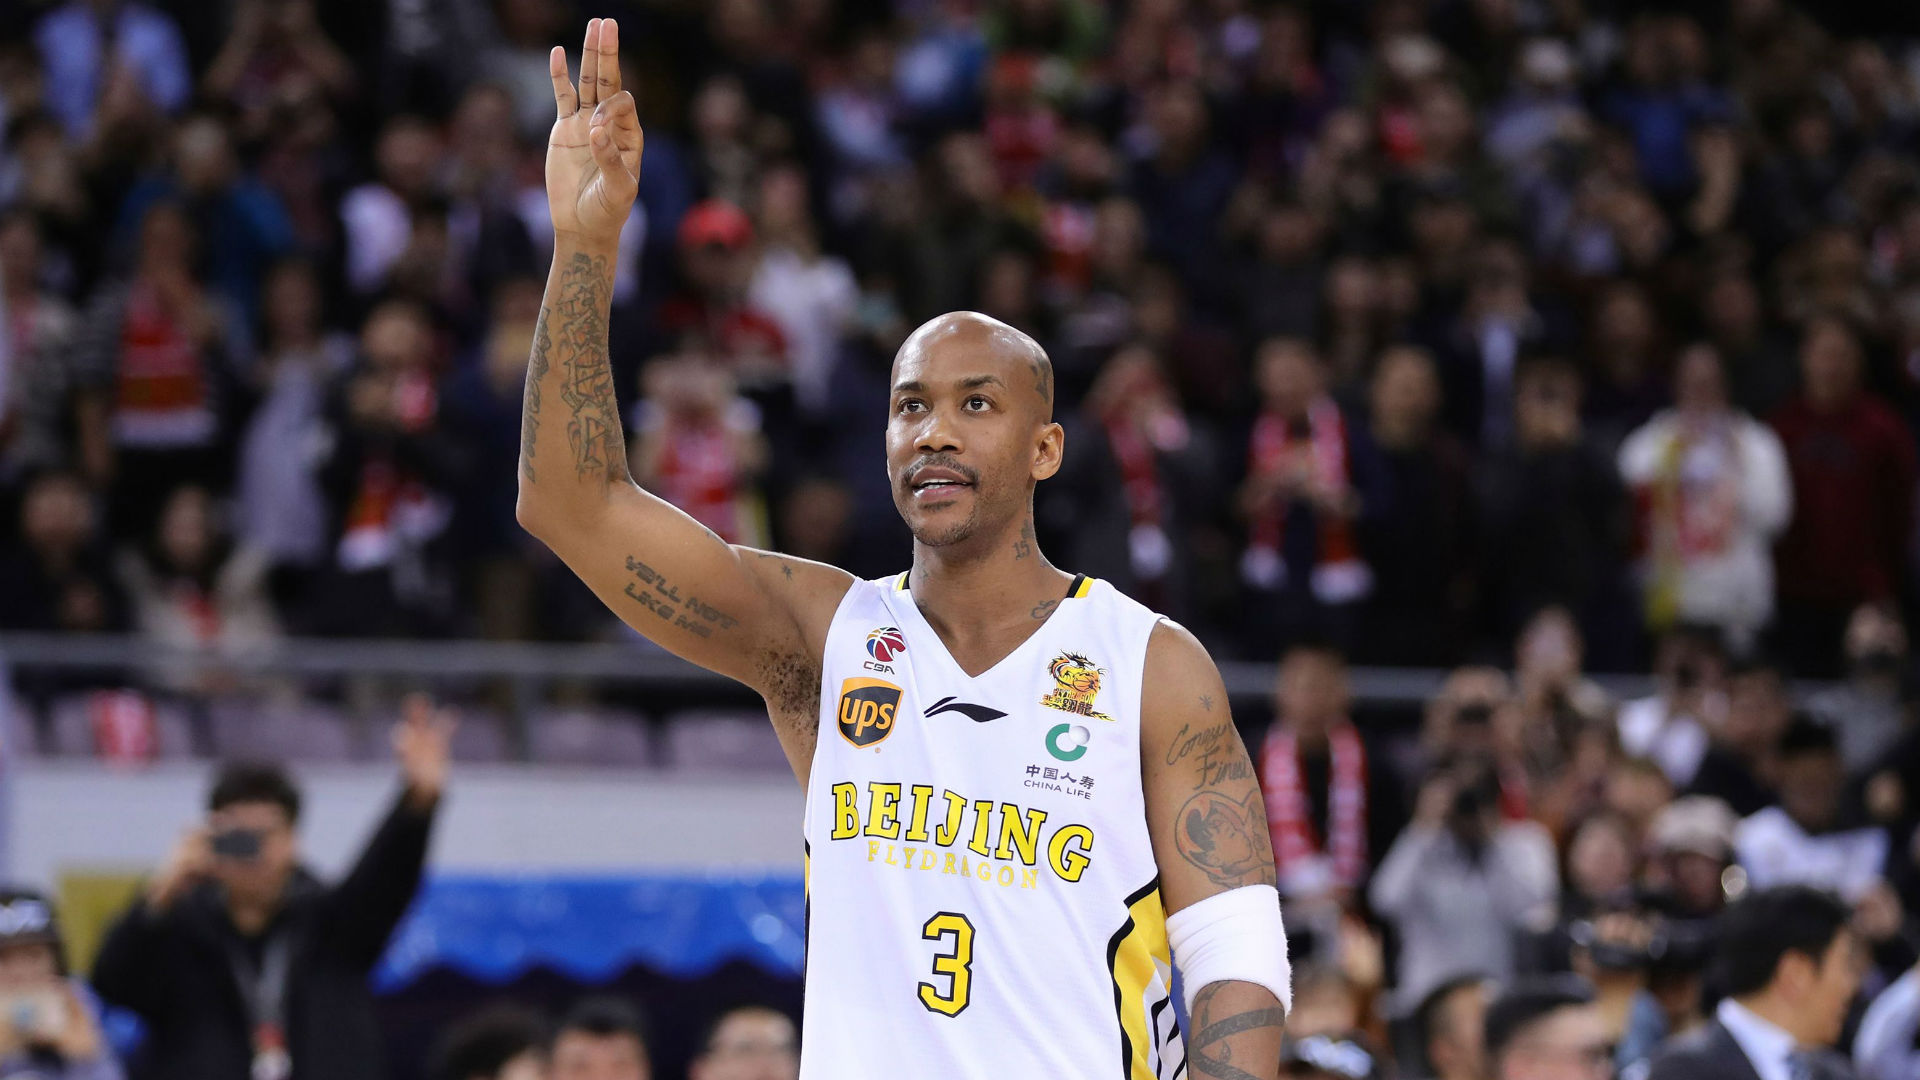 Stephon Marbury becomes coach of Beijing team in CBA